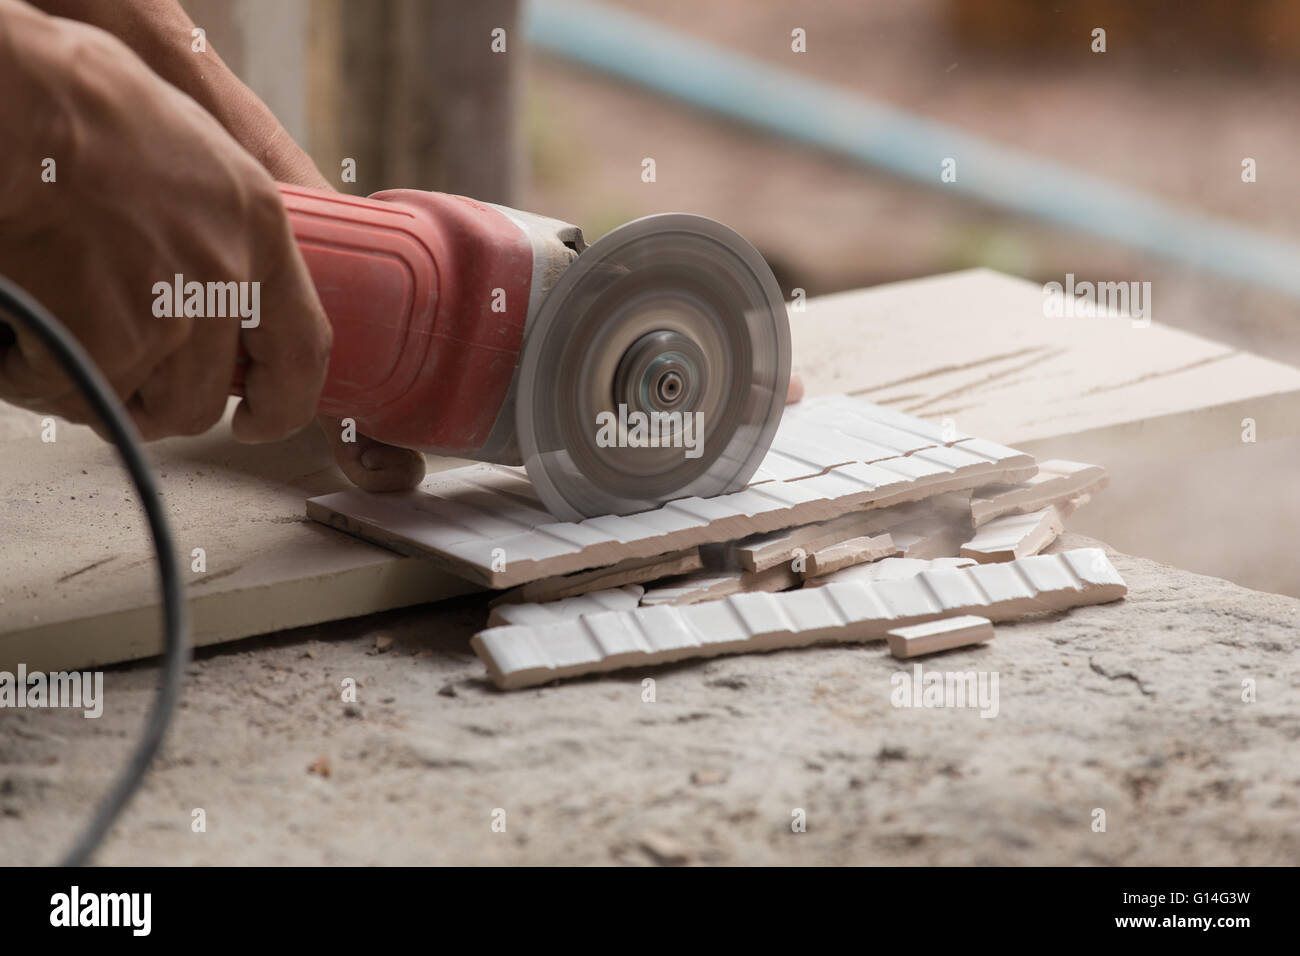 Cutting floor tiles with angle grinder